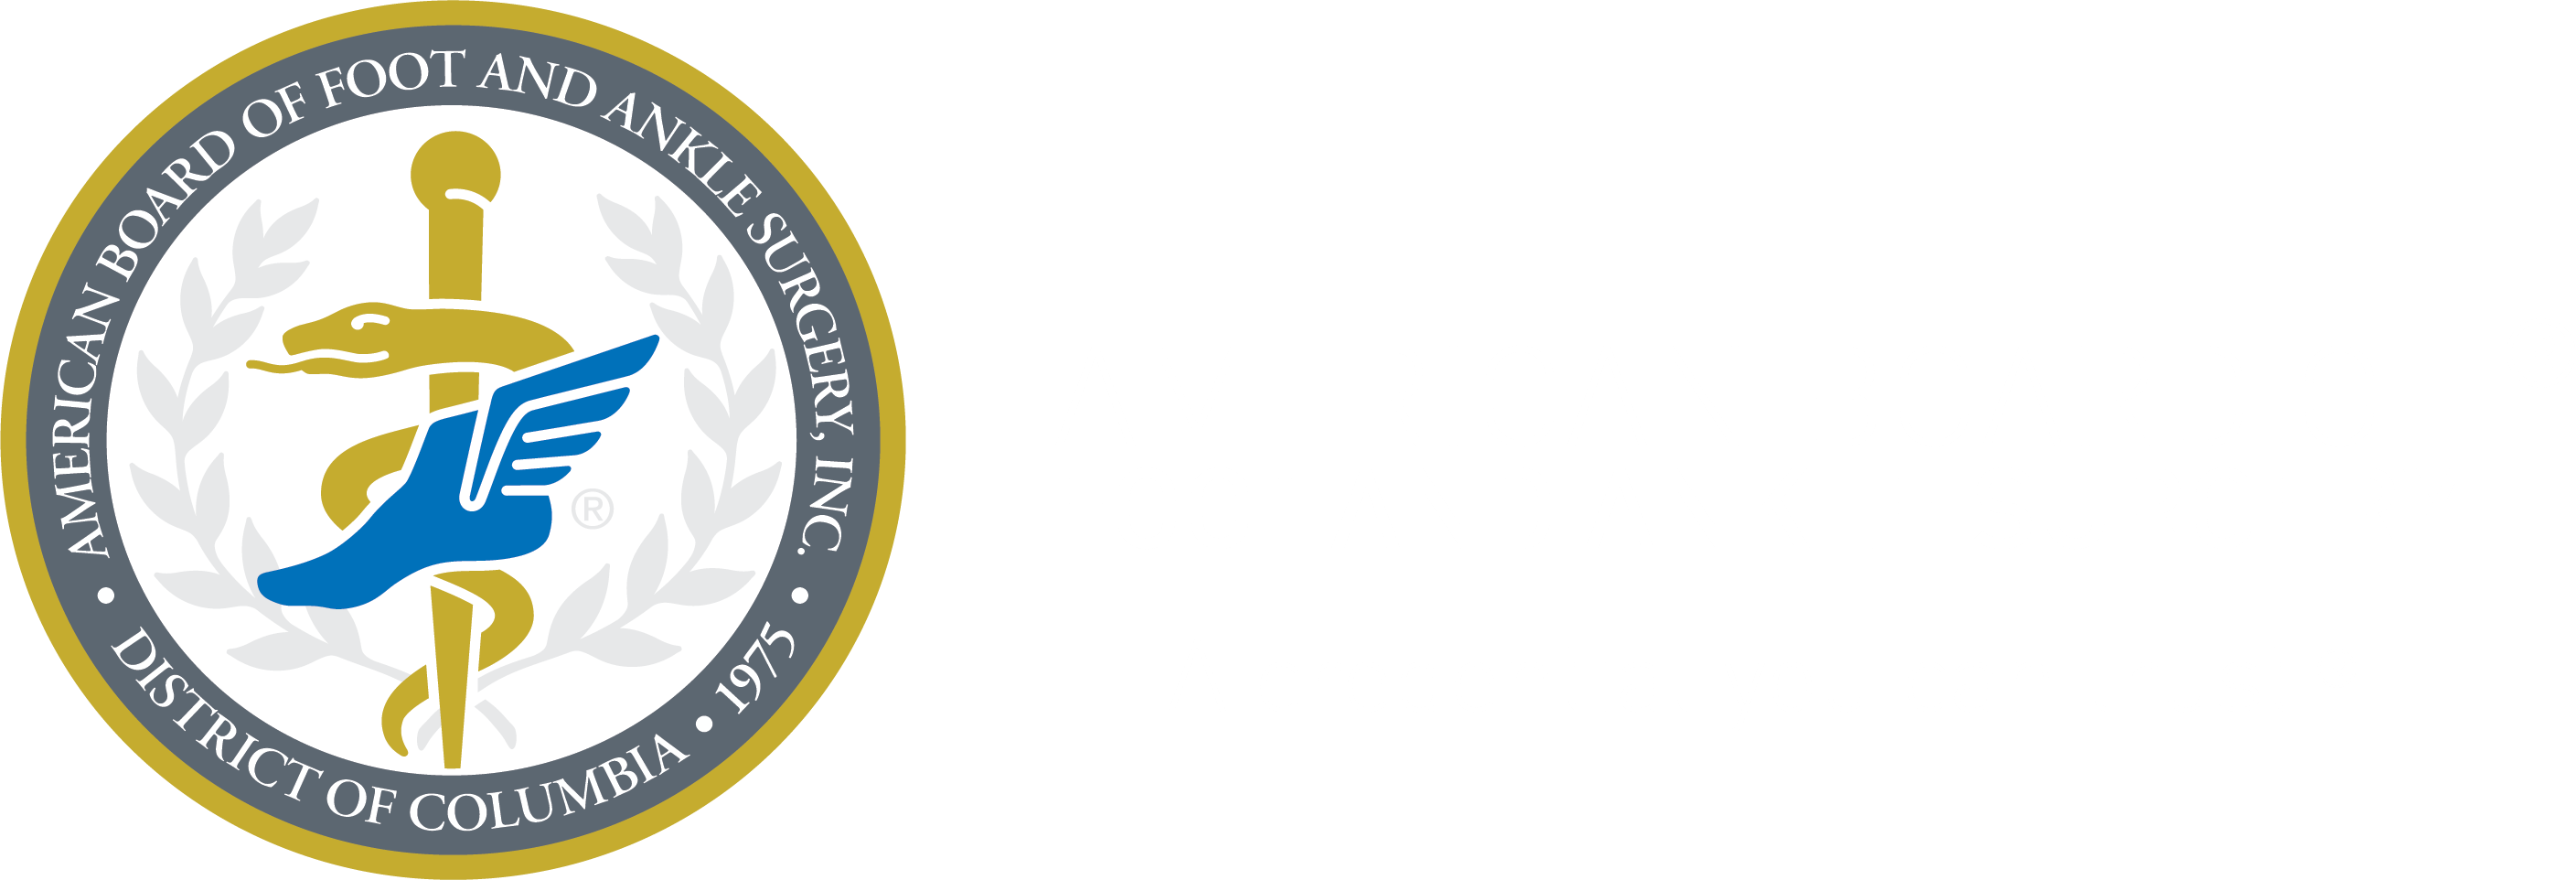 American Board of Foot and Ankle Surgery : A Credential You Can Trust